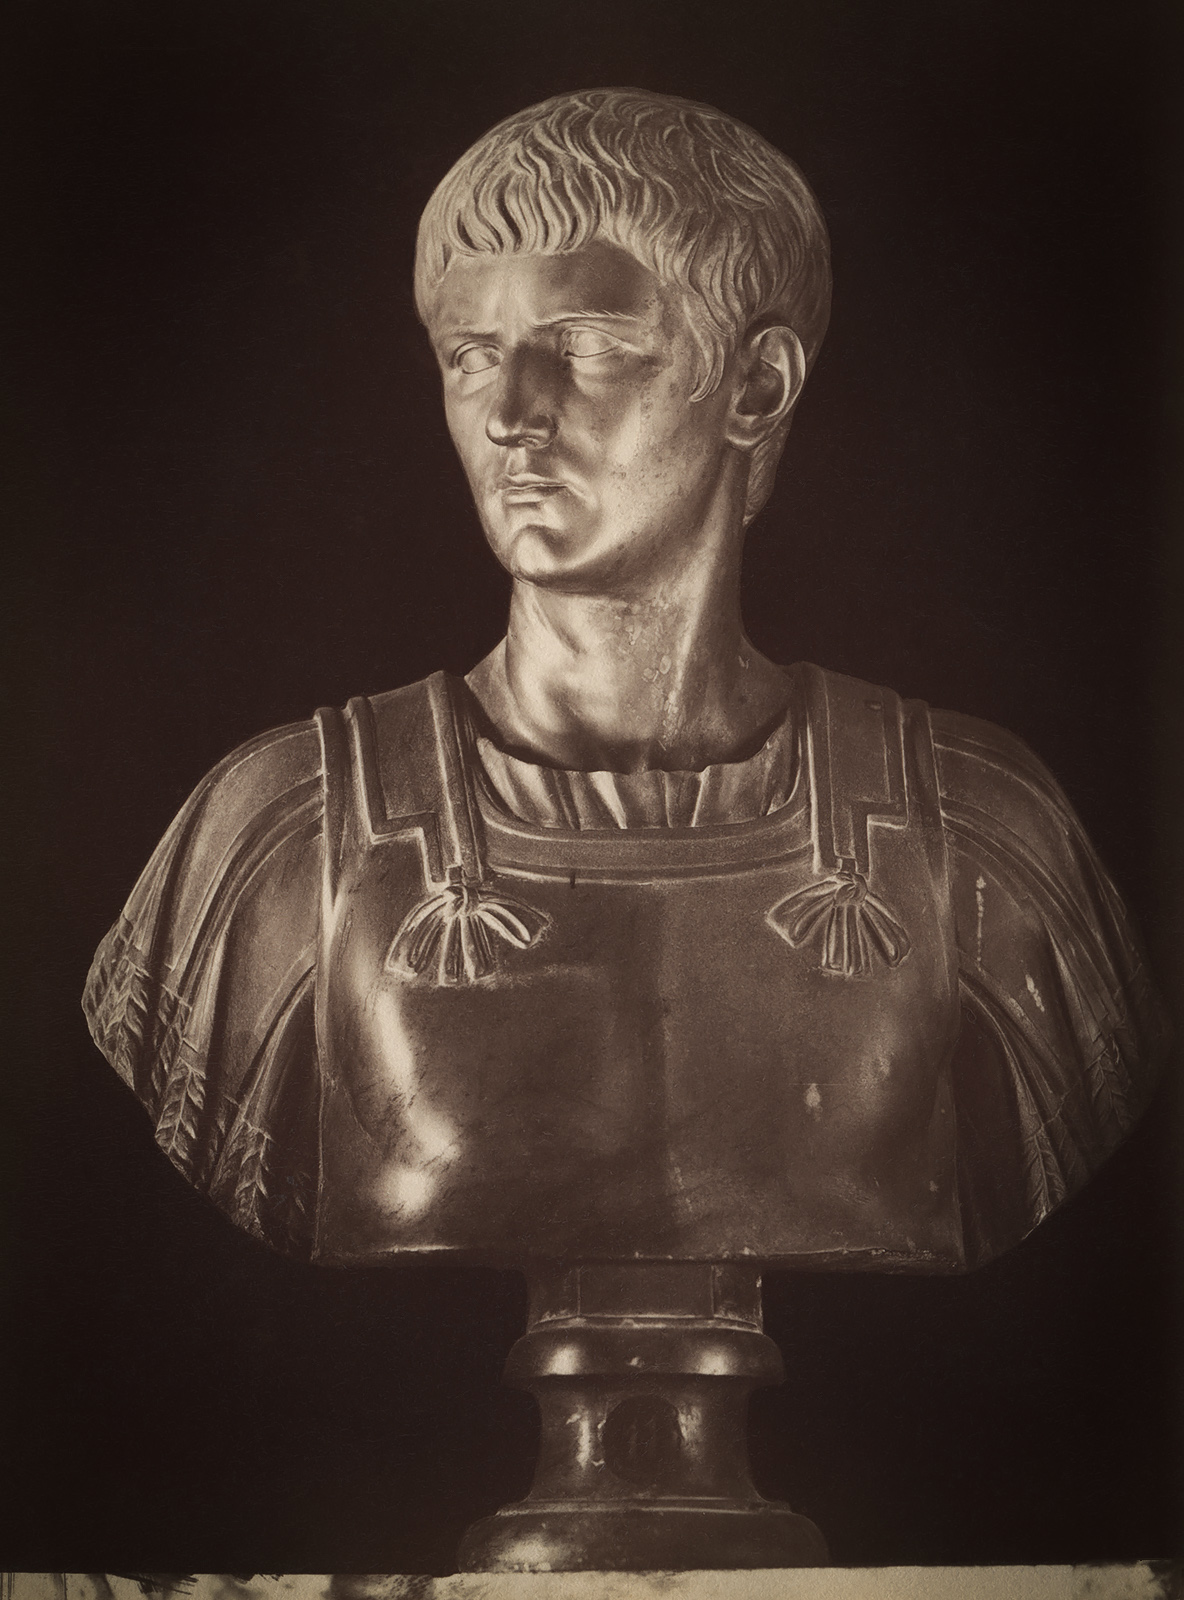 Caligula, the son of Germanicus. Basalt. 17th cent. (?) Inv. No. 2356. Rome, Capitoline Museums